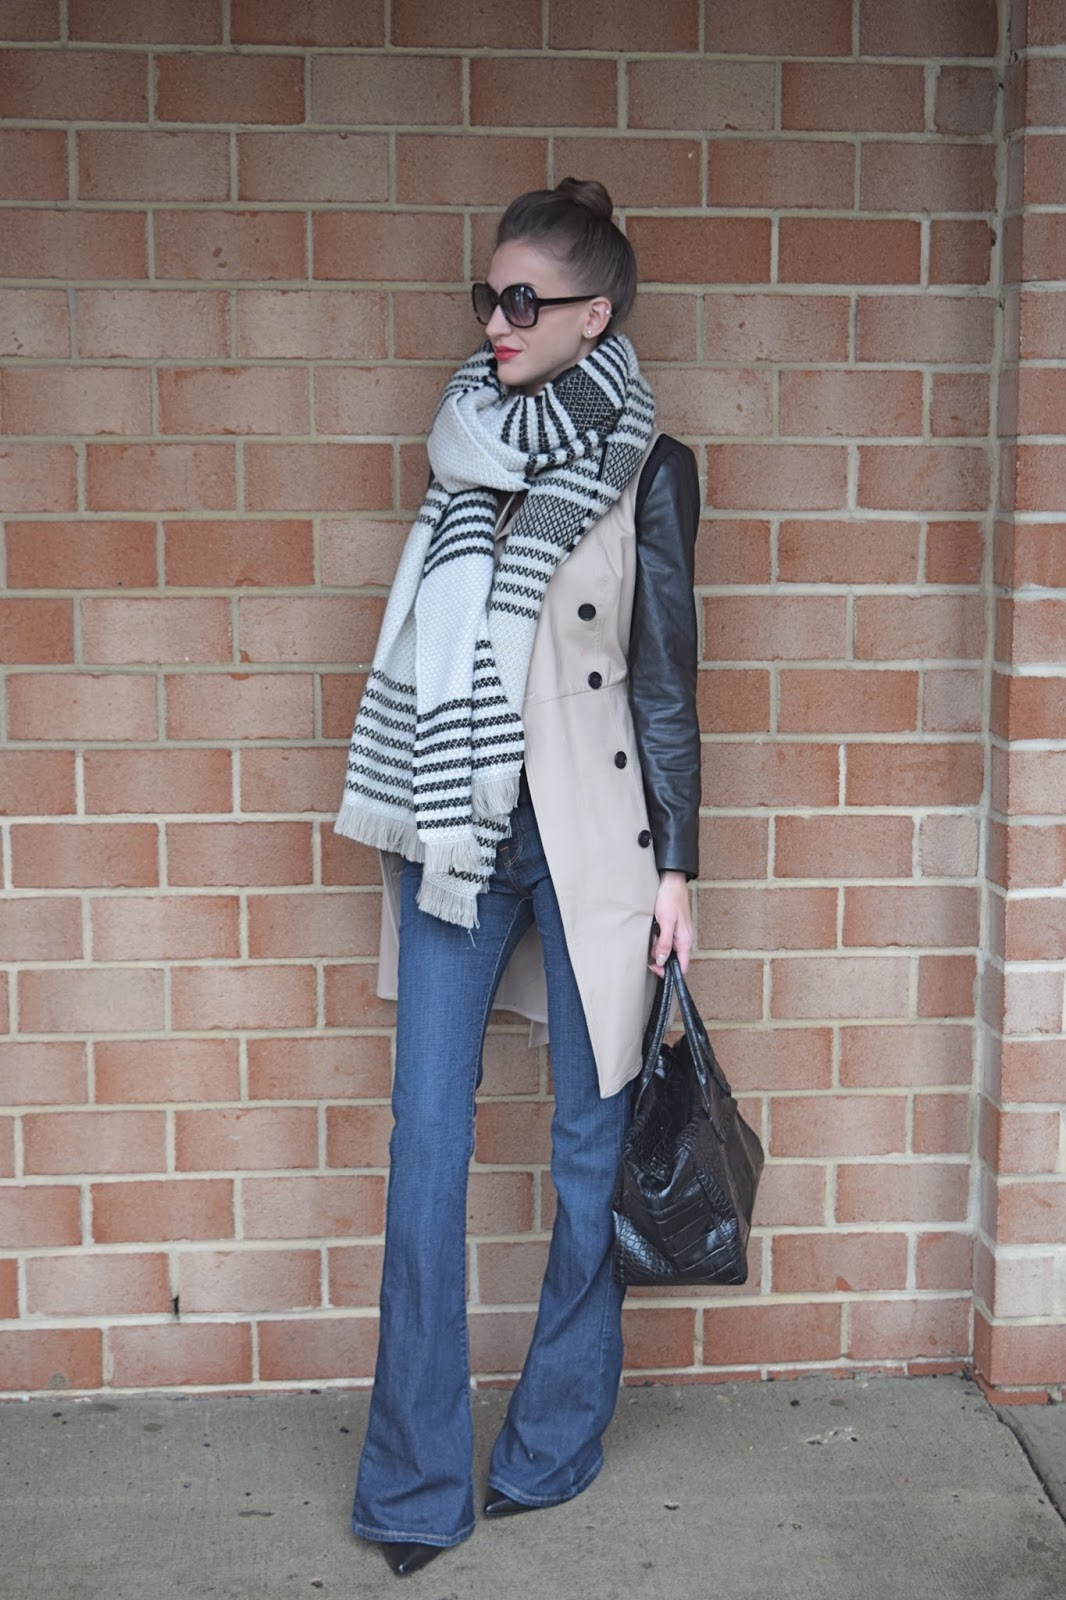 Wearing leather coat and flare jeans, Trench coat look with flare jeans